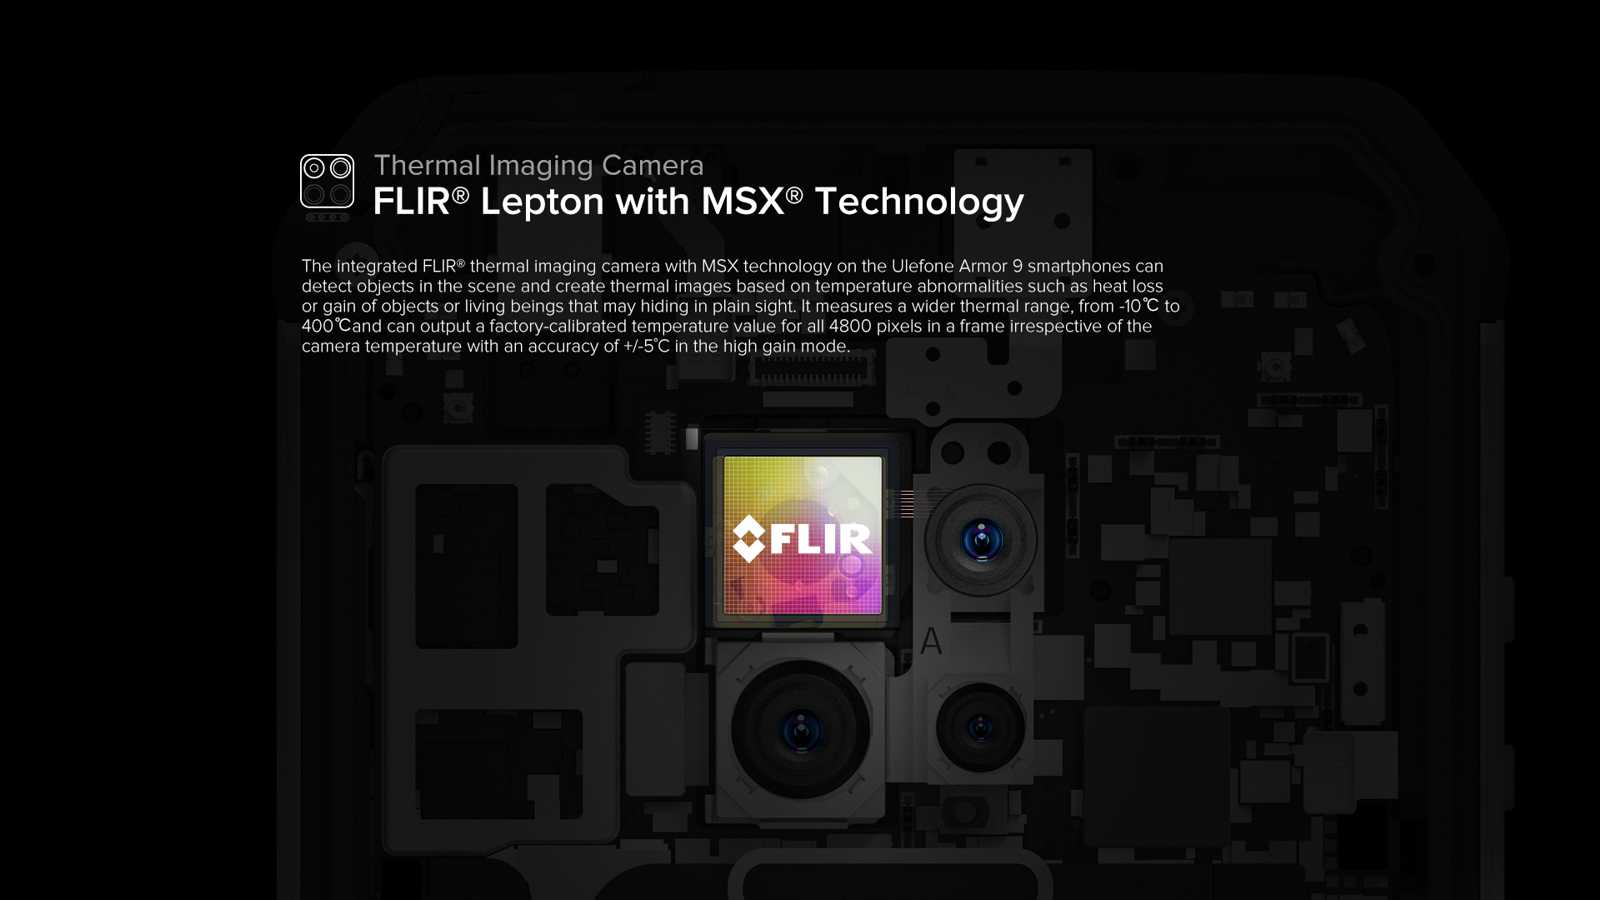 FLIR Lepton with MSX Thechnology